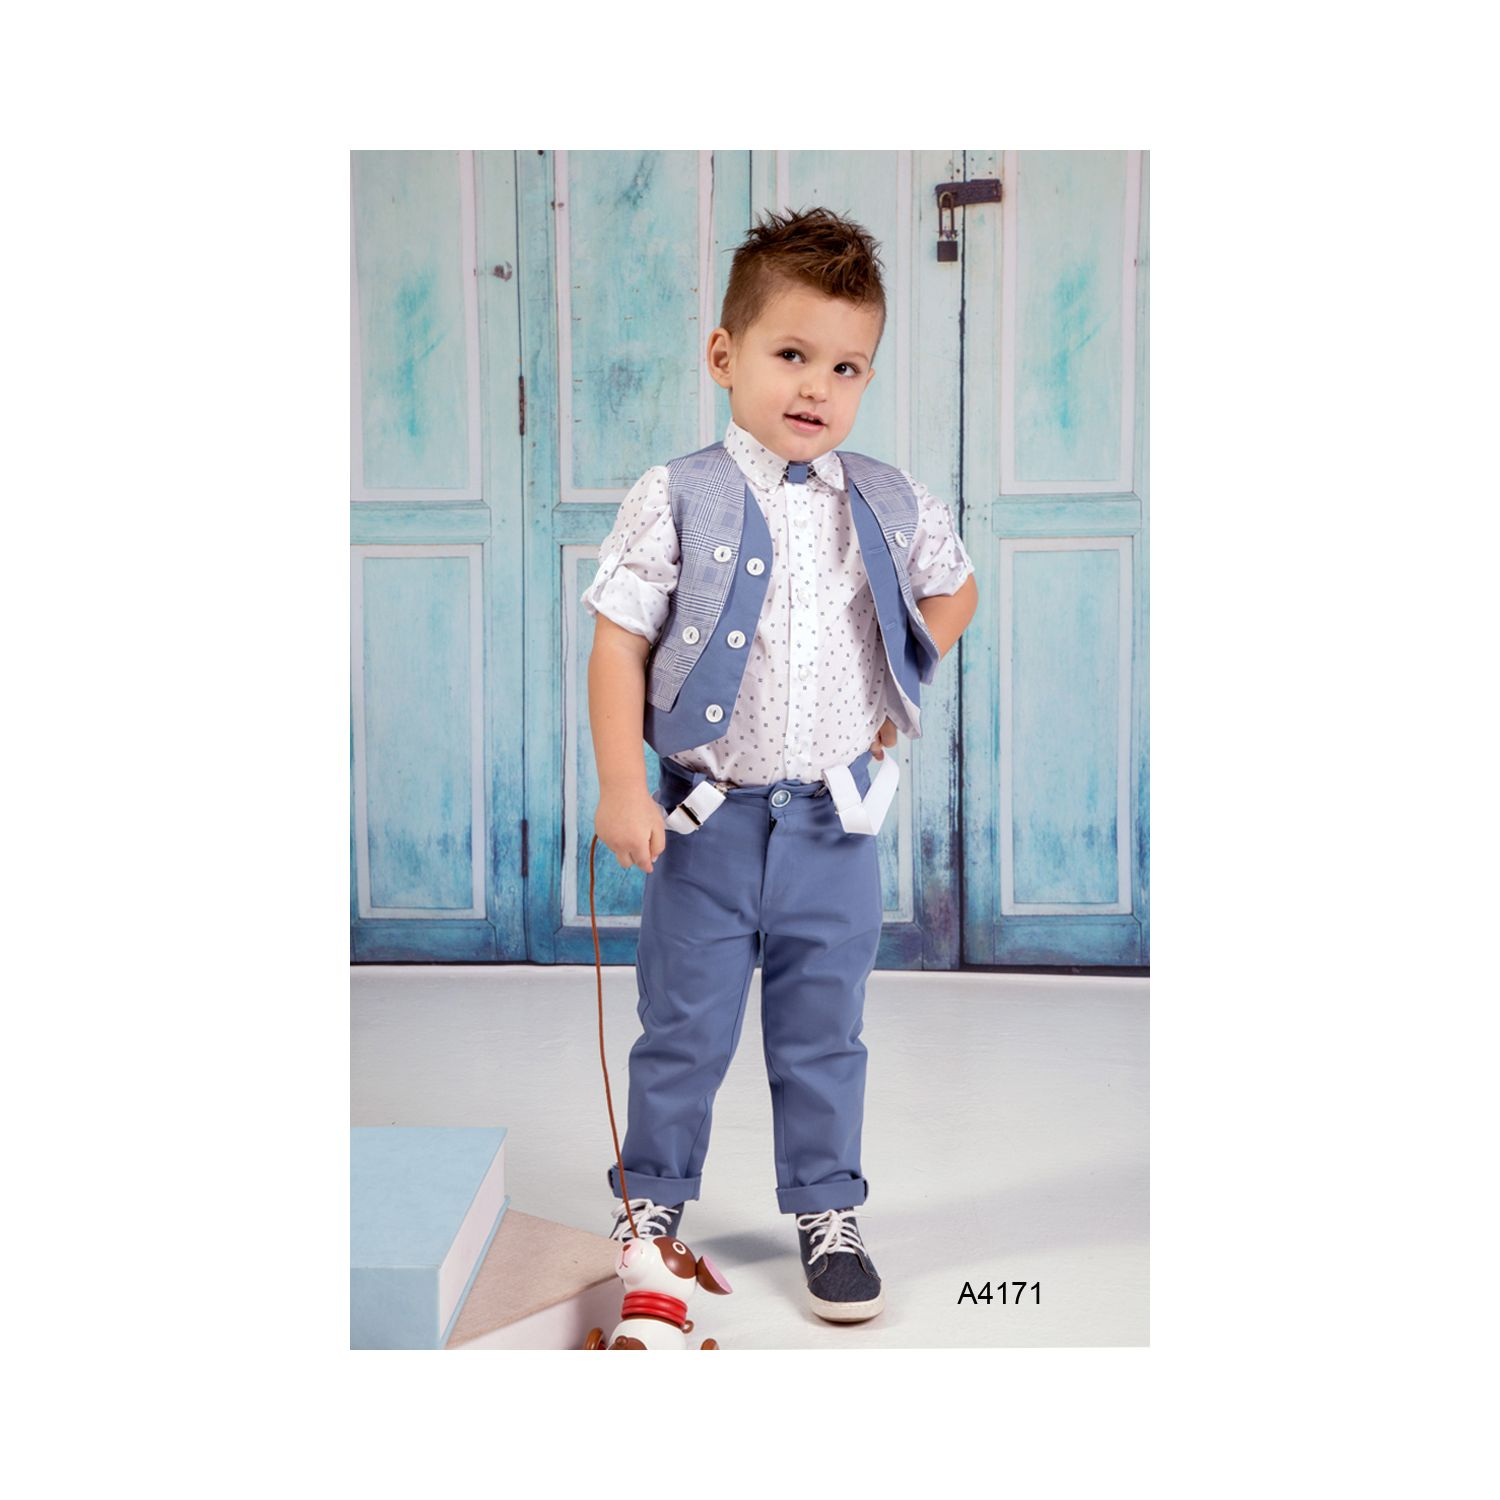 Modern christening clothes for boys A4171